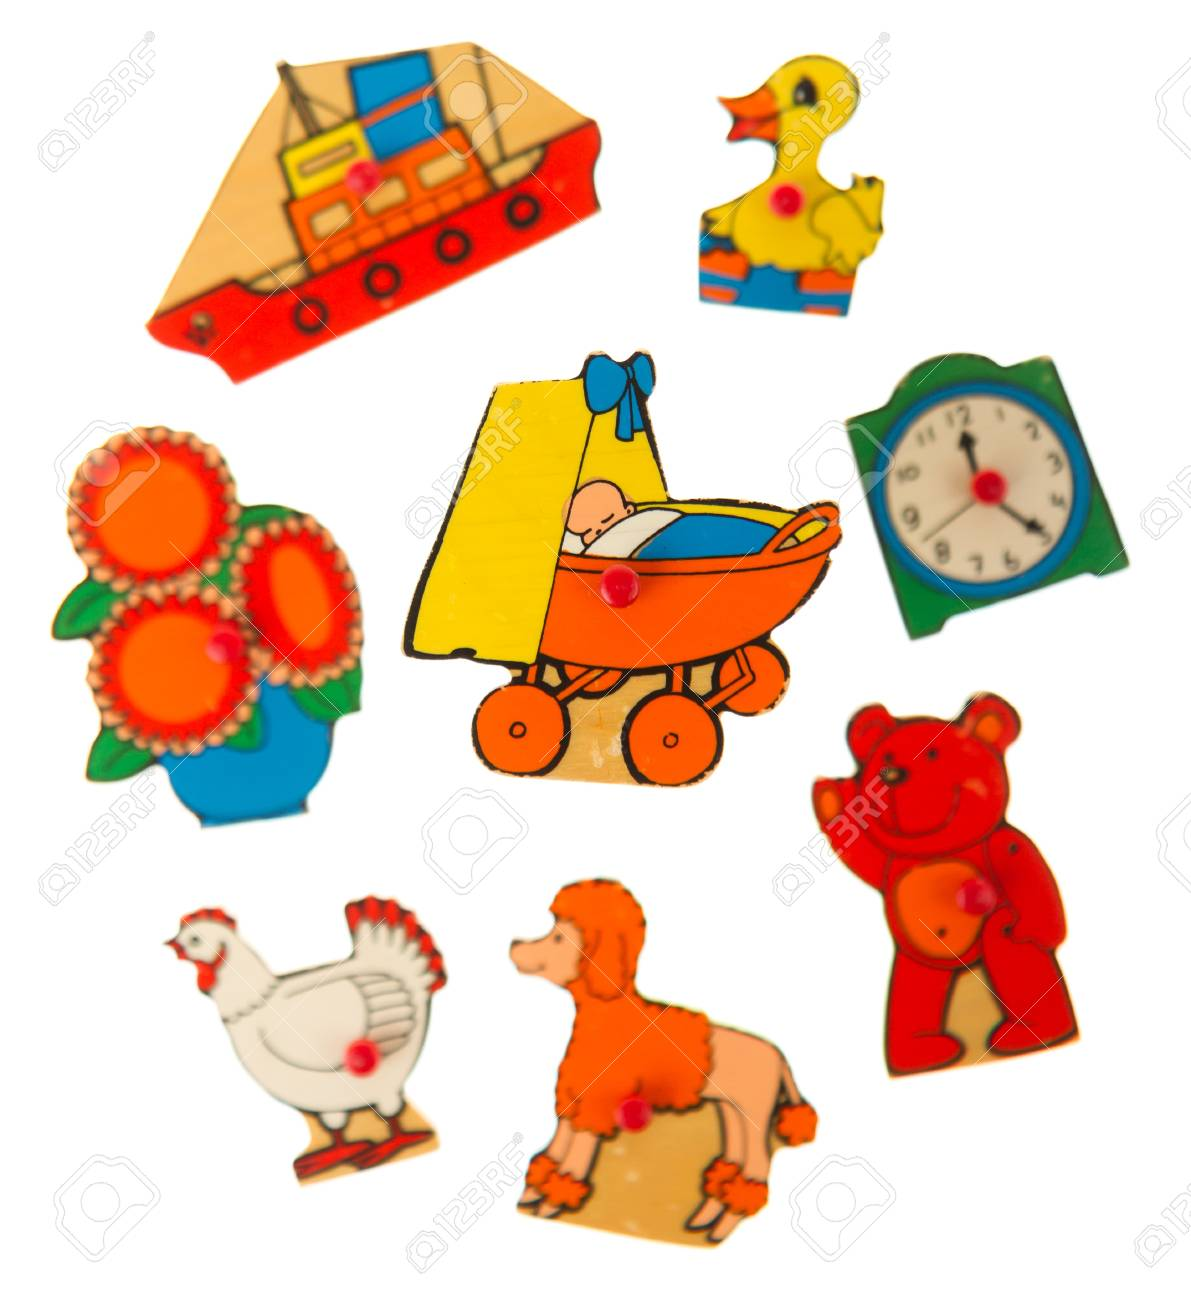 Piece of an antique wooden puzzle for children leaning illustrations (1970, carriage) Stock Illustration - 14429835